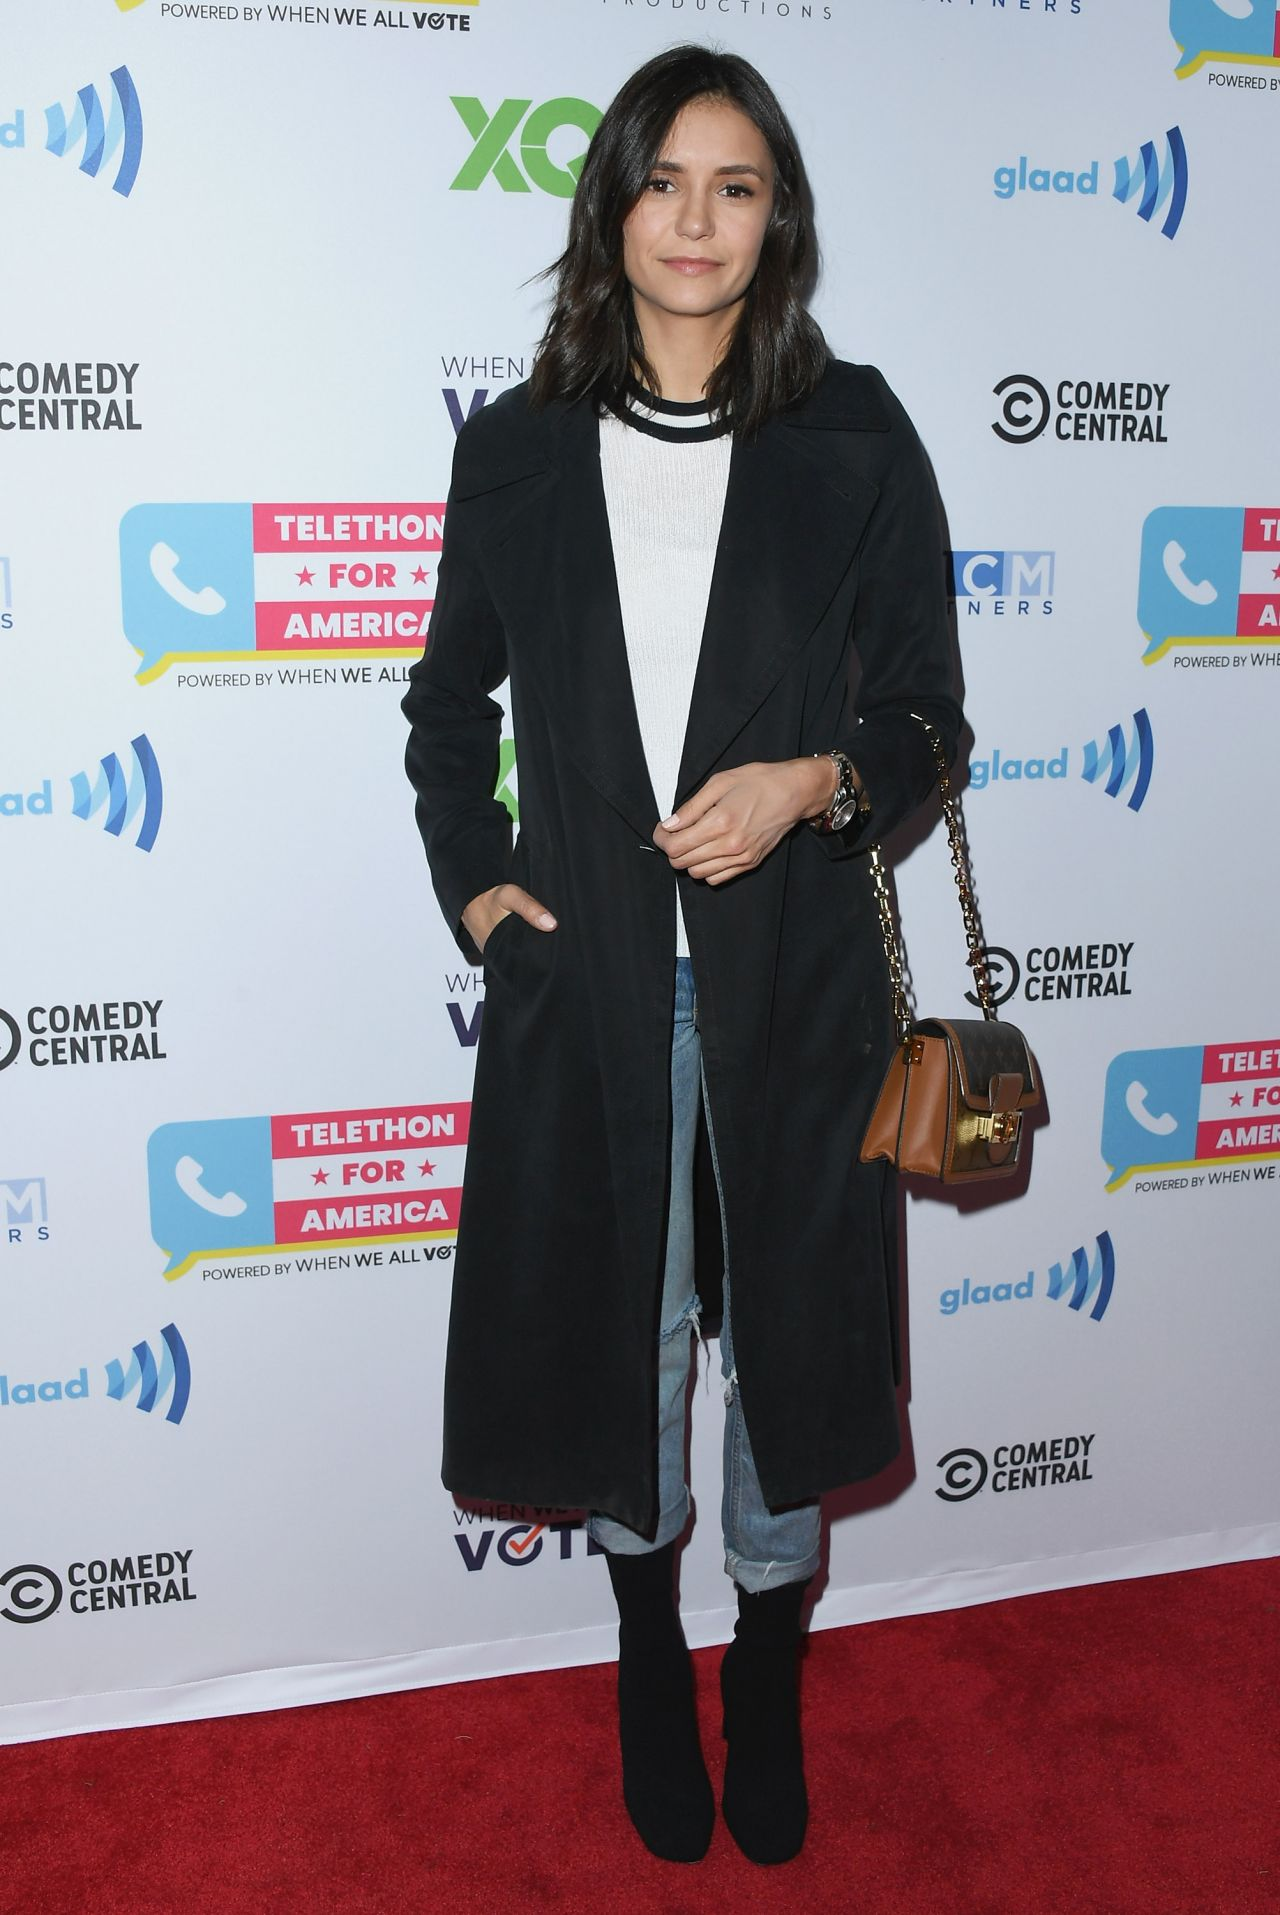 https://celebmafia.com/wp-content/uploads/2018/11/nina-dobrev-telethon-for-america-in-los-angeles-11-05-2018-6.jpg